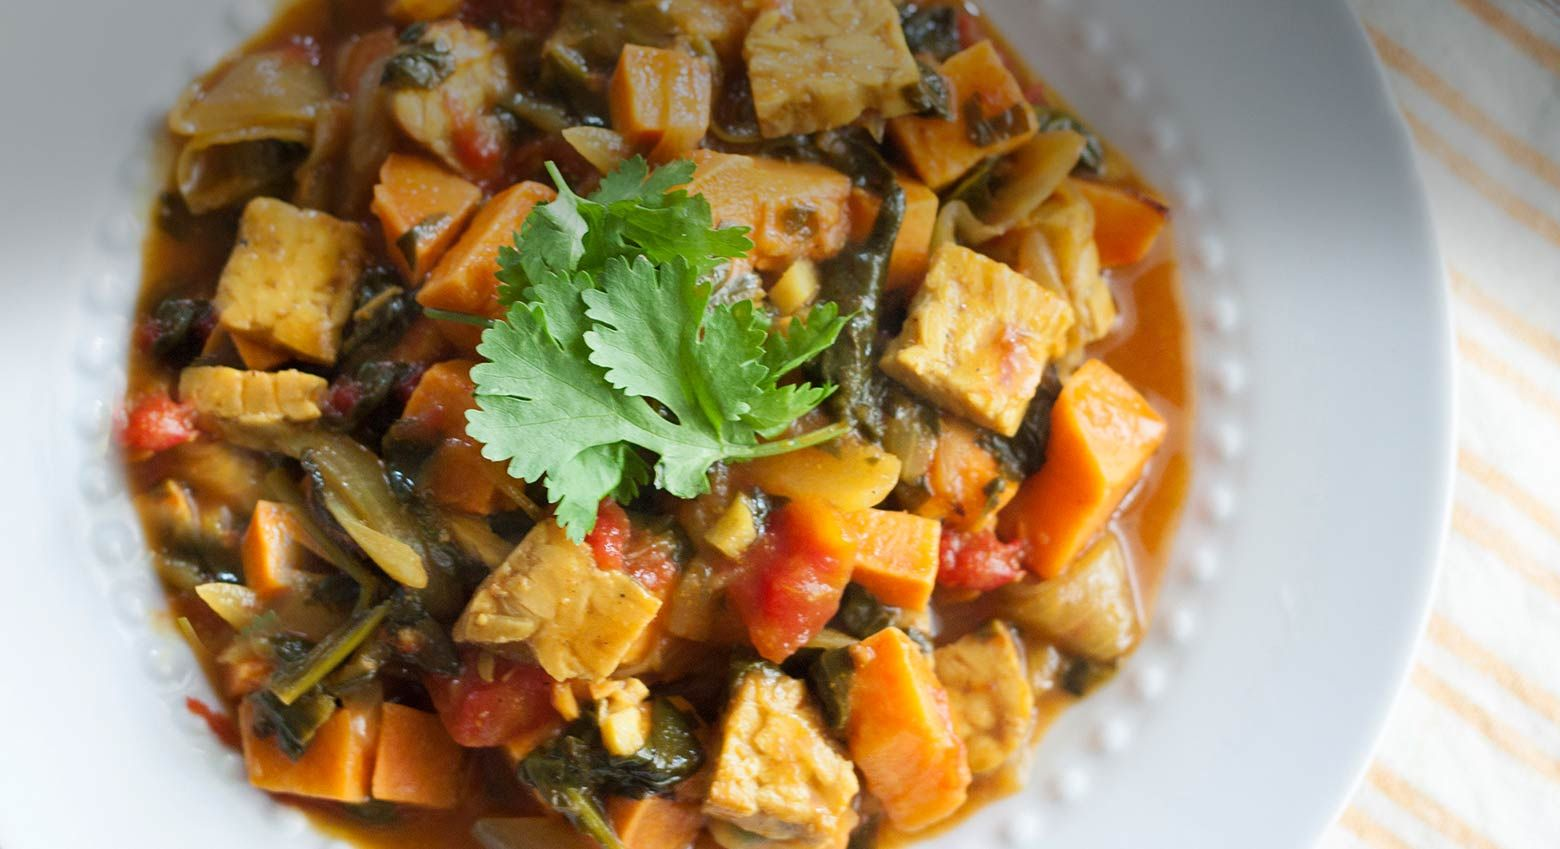 Our Indian inspired coconut curry tempeh will infuse its